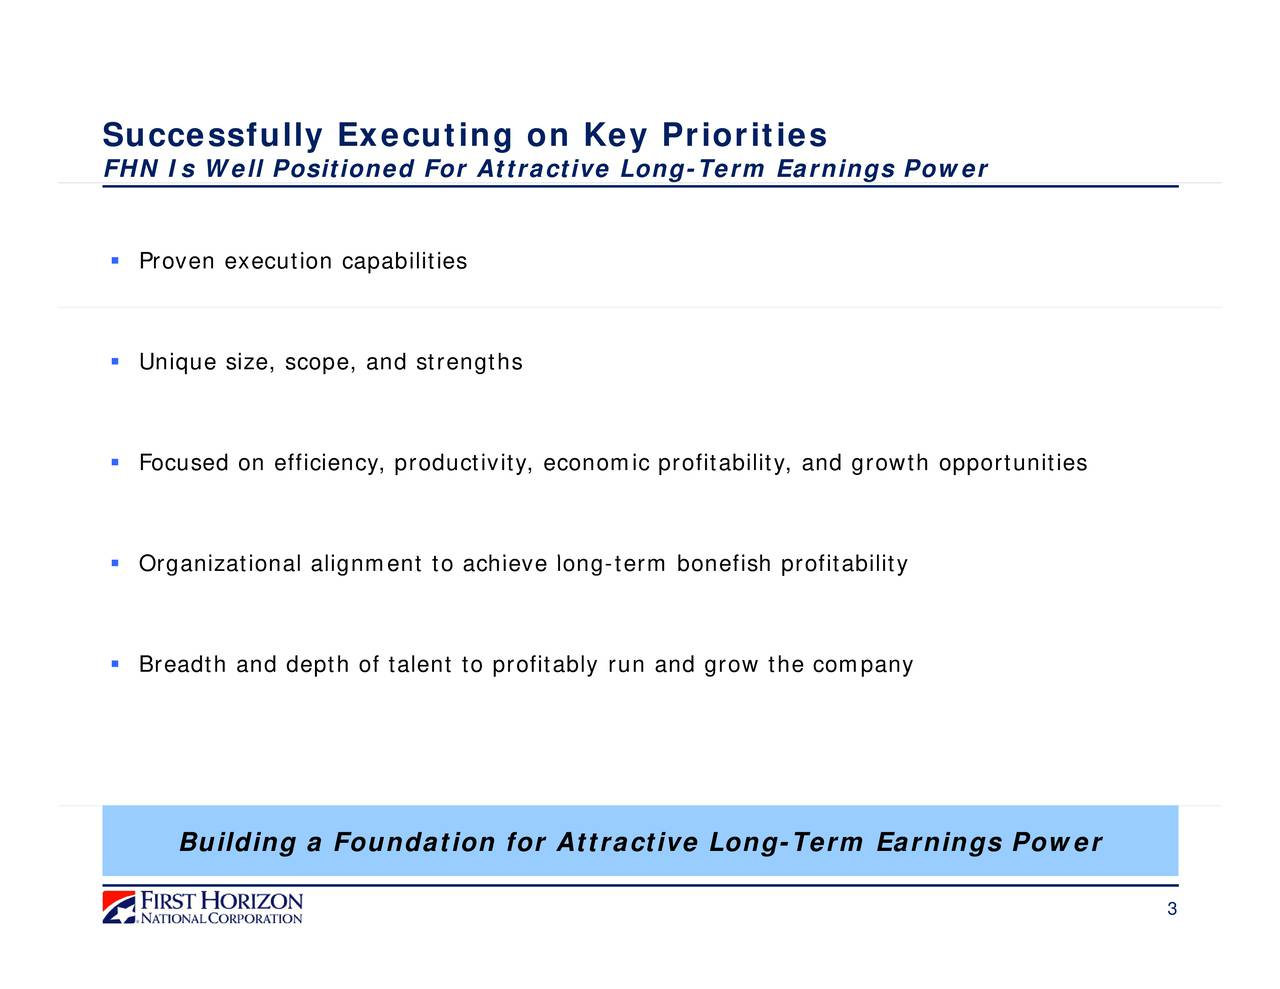 y ailit fit pro s fi one b ic profitability, and growth opportunities -rm b fi h fit bilit g on l ofitably run and grow the company hie ac o t t nmen lig l ona ti ia an r Building a Foundation for Attractive Long-Term Earnings Power Proven eUncquonsze,scoieOsaffietiy,tl liuctitttyhieclnomnt to pr SuF HNeIs WfellPyoEitencudtinrgAttnactivy Lonri-Teimiesarnings Power